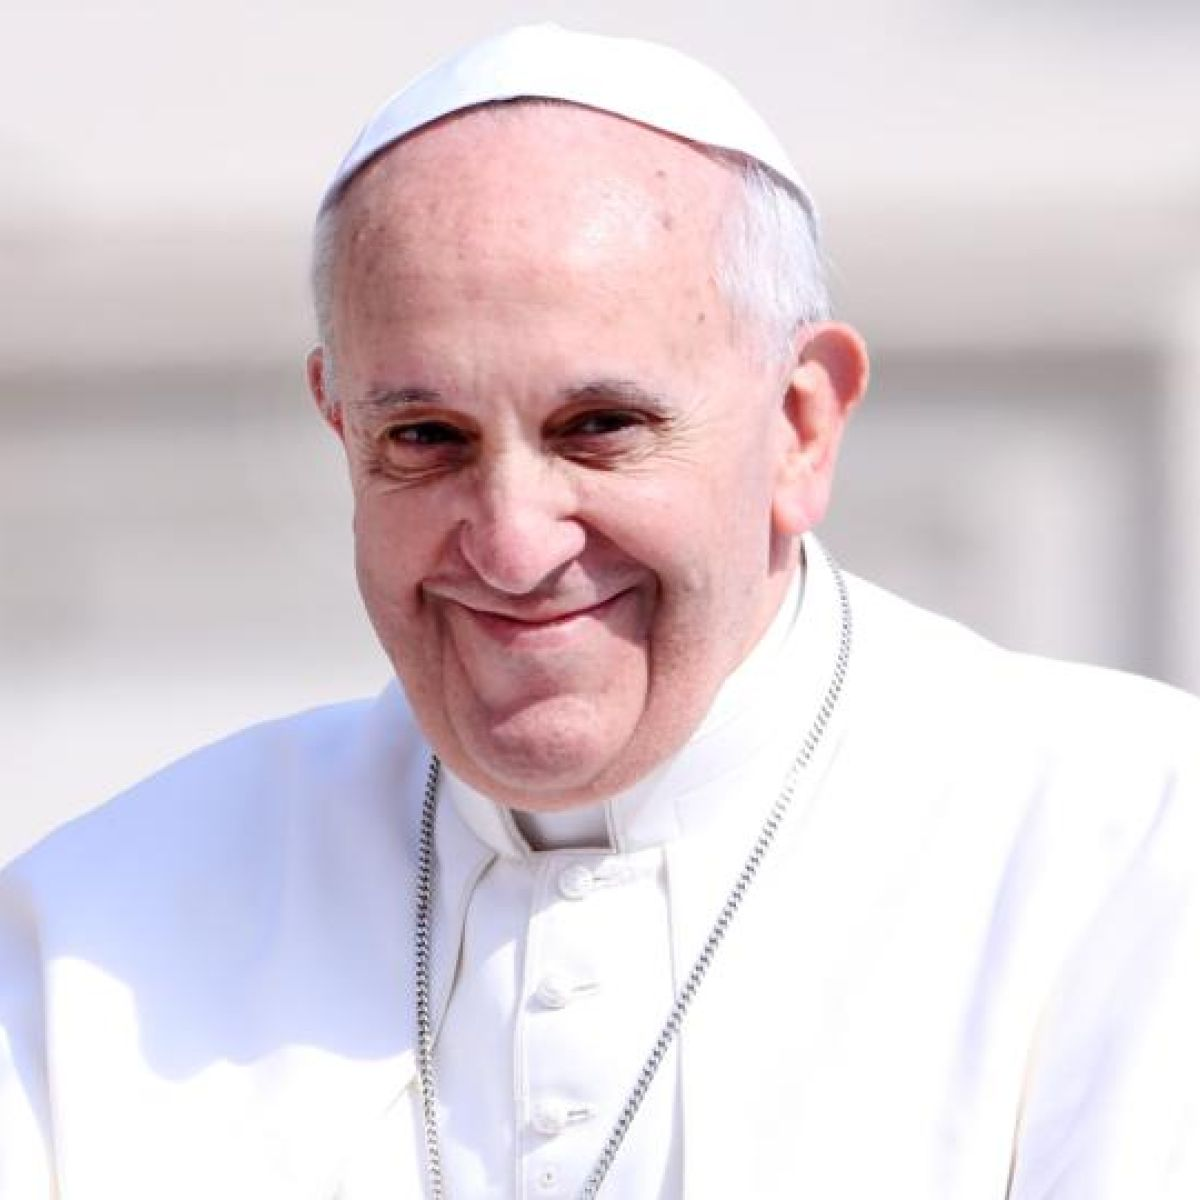 Five years of Pope Francis: Lots of style, little substance